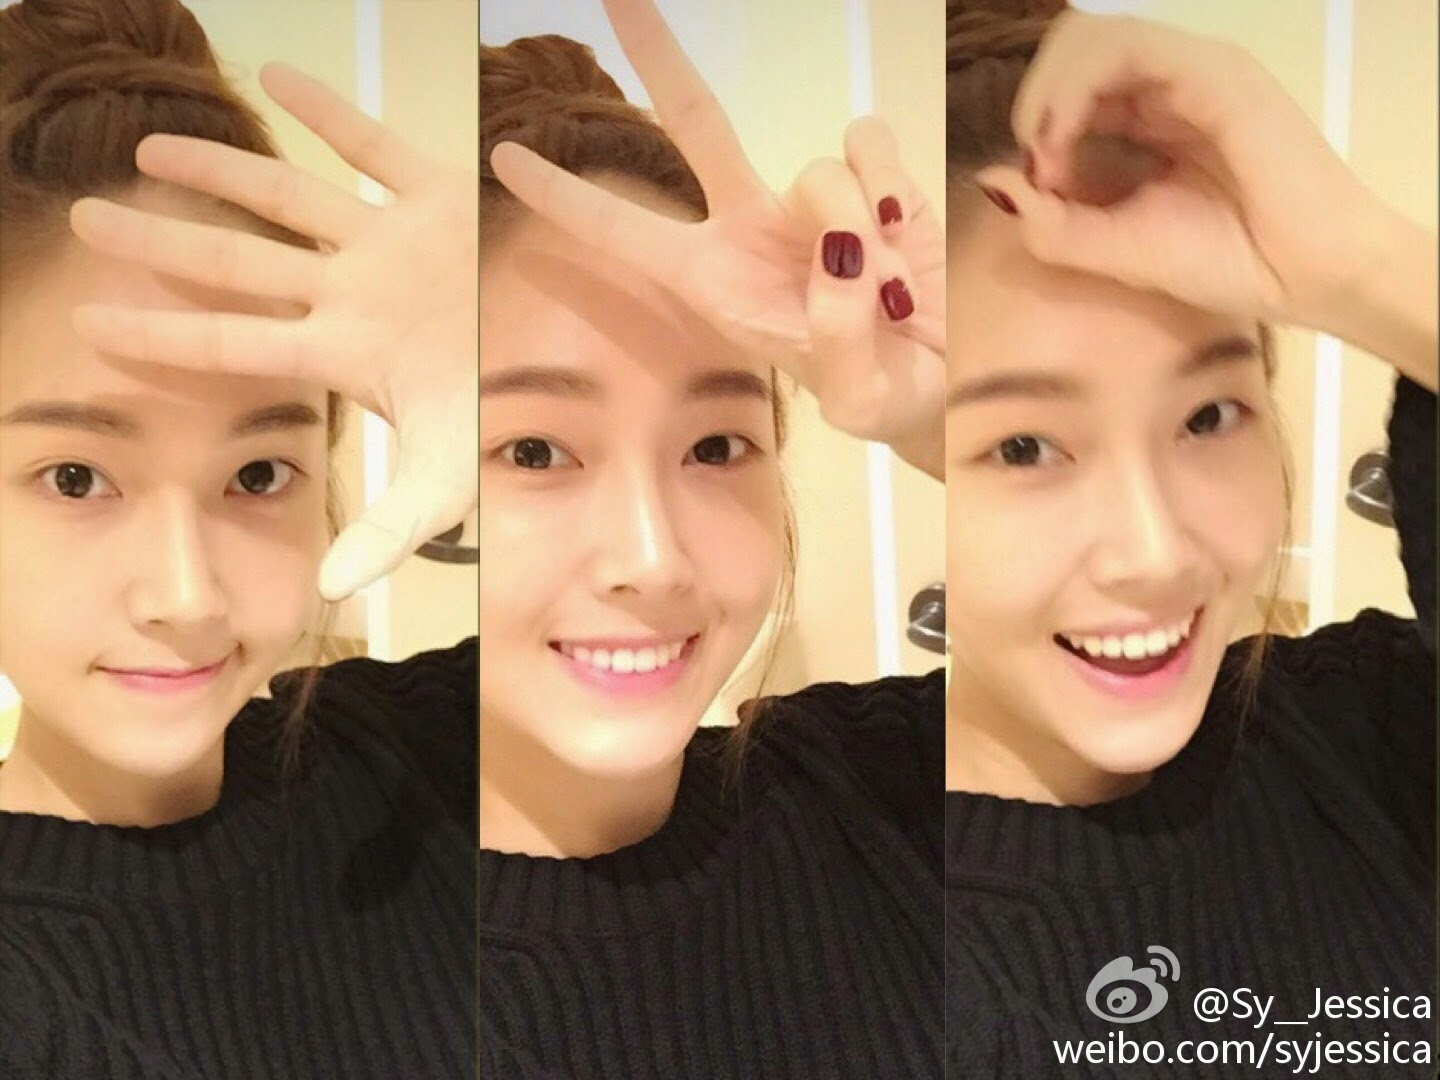 Jessica updates her Weibo with '520′